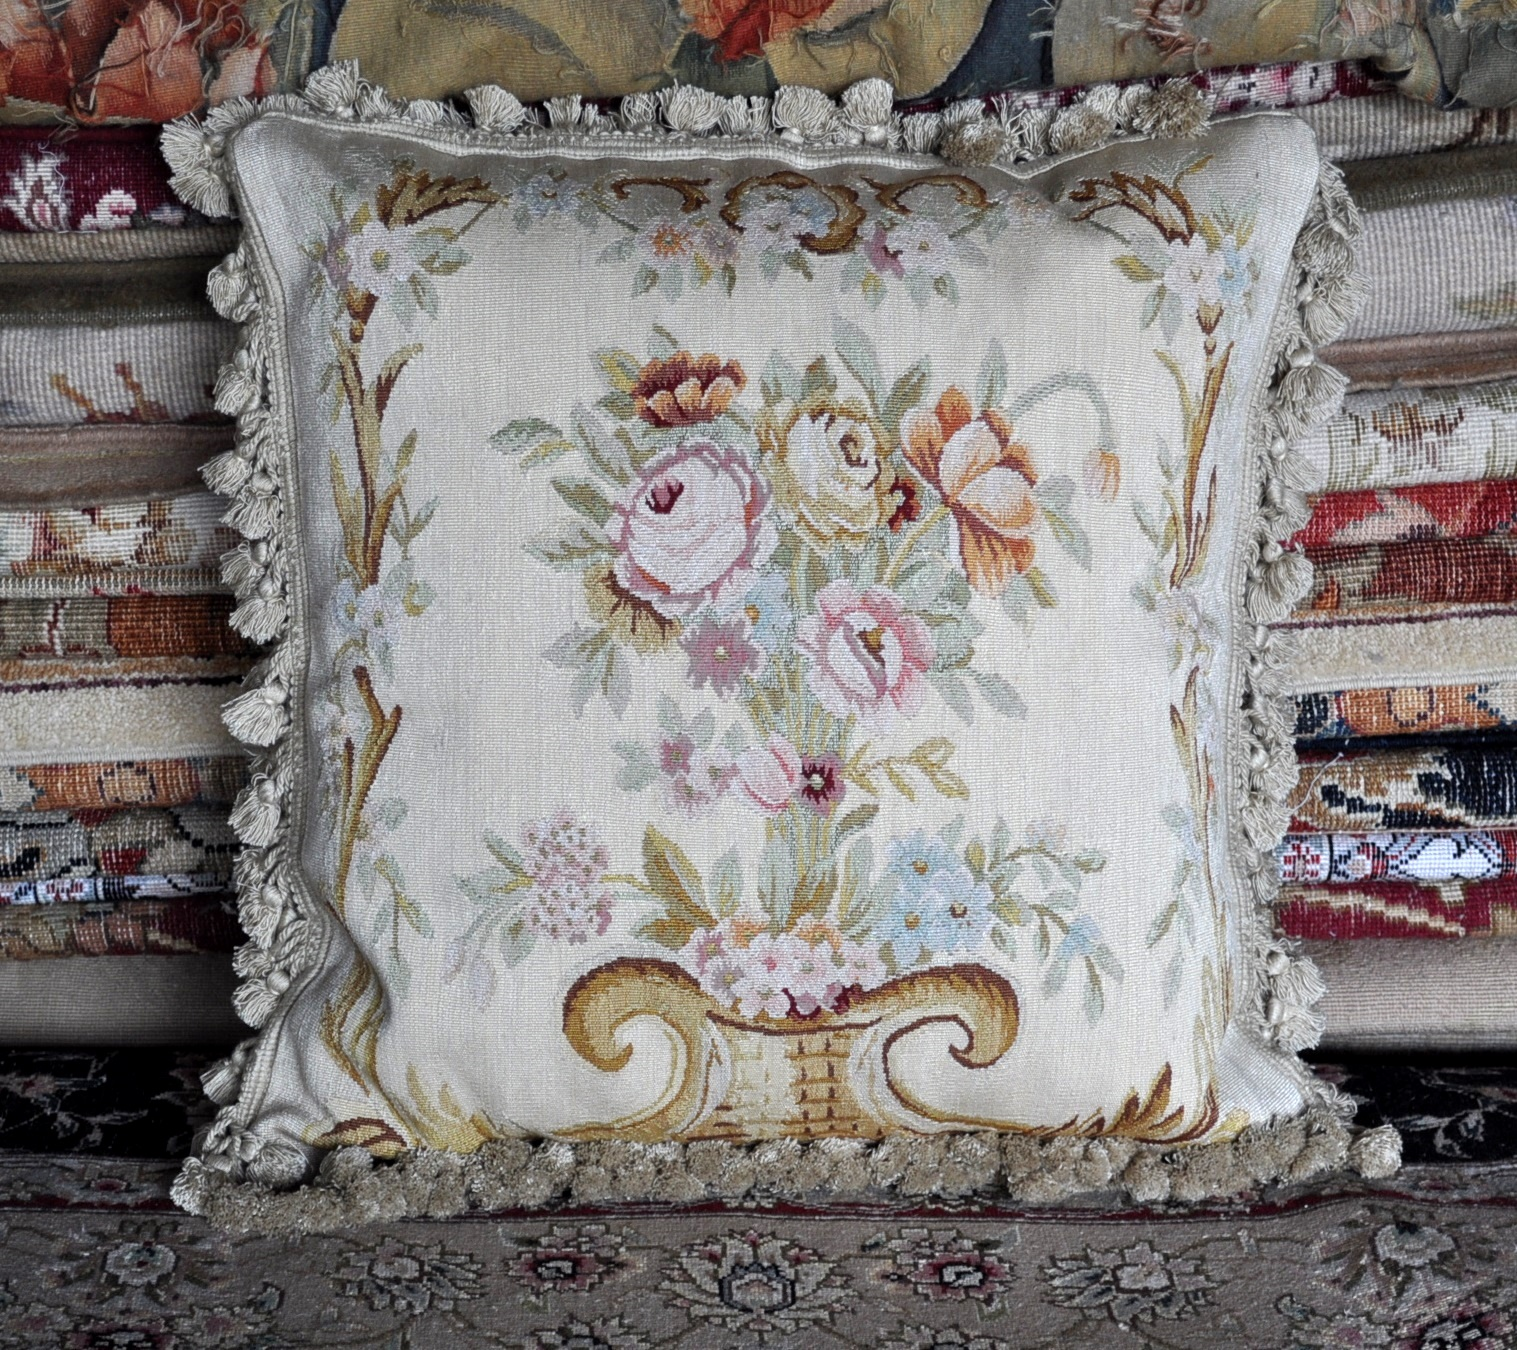 20″ x 20″ Antique Reproduction Handmade Gobelins Tapestry Weave Wool/Silk Aubusson Pillow Cover 12980898